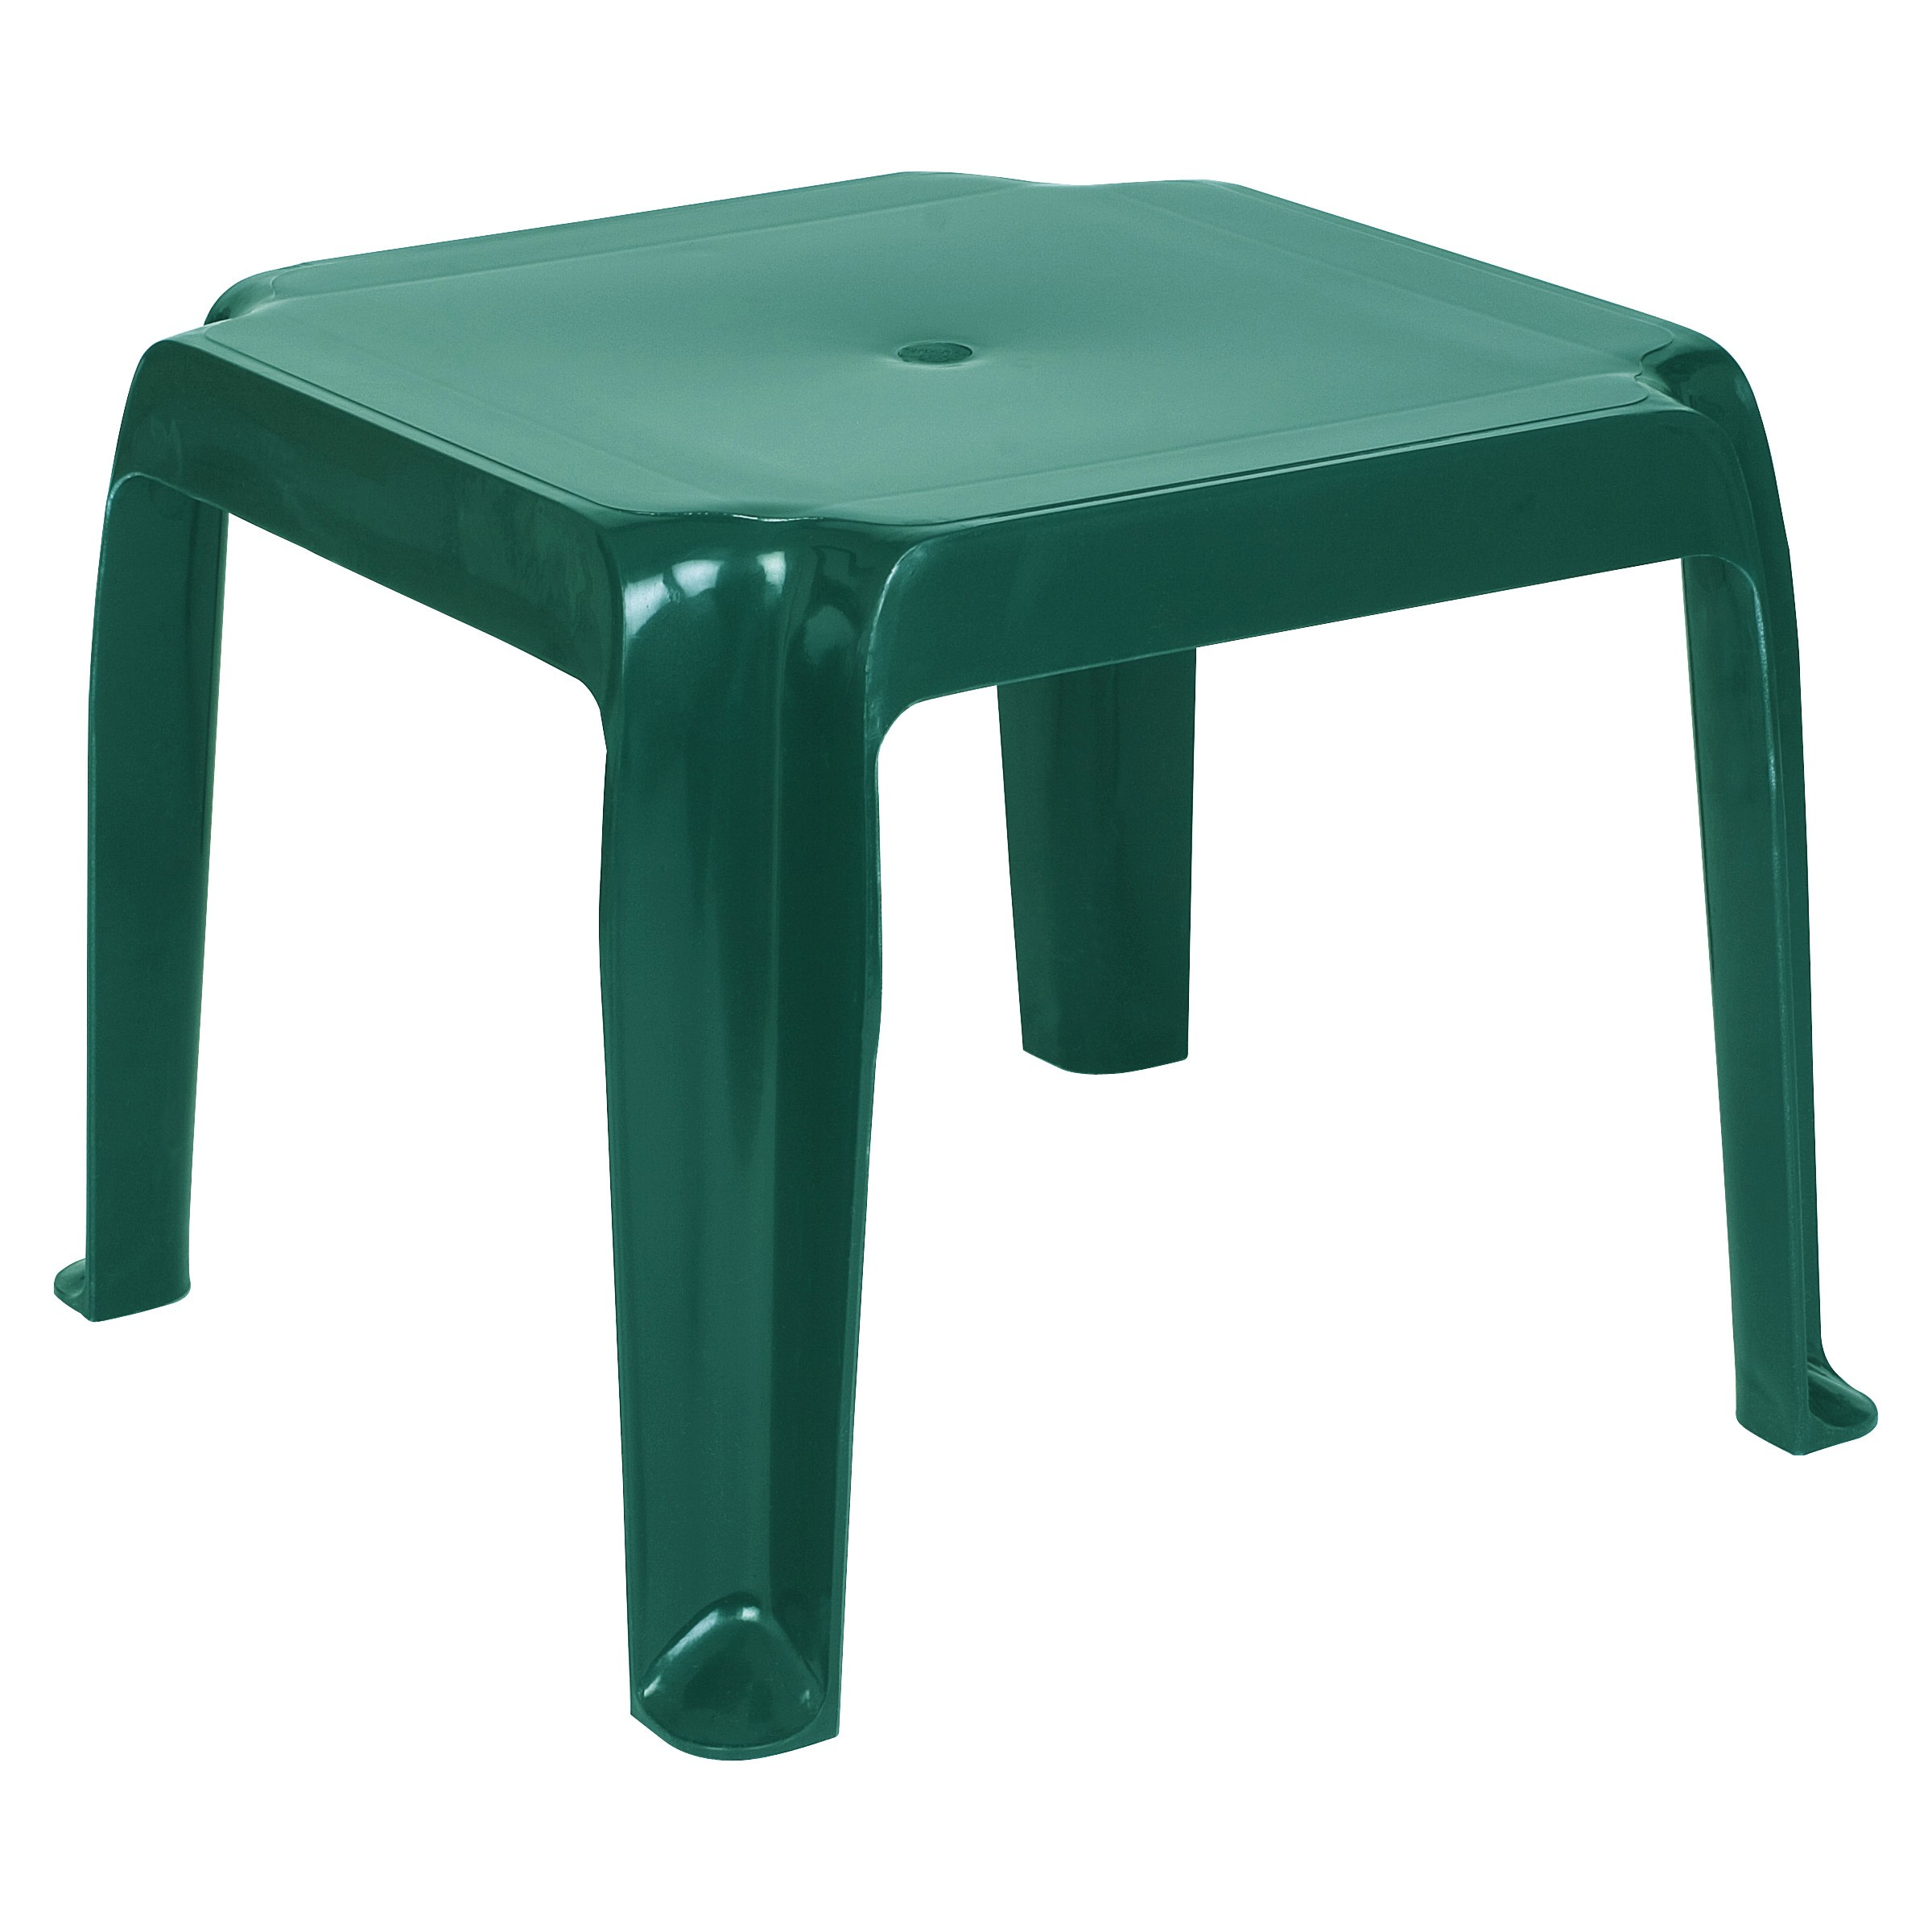 Sunray Resin Side Table - Green